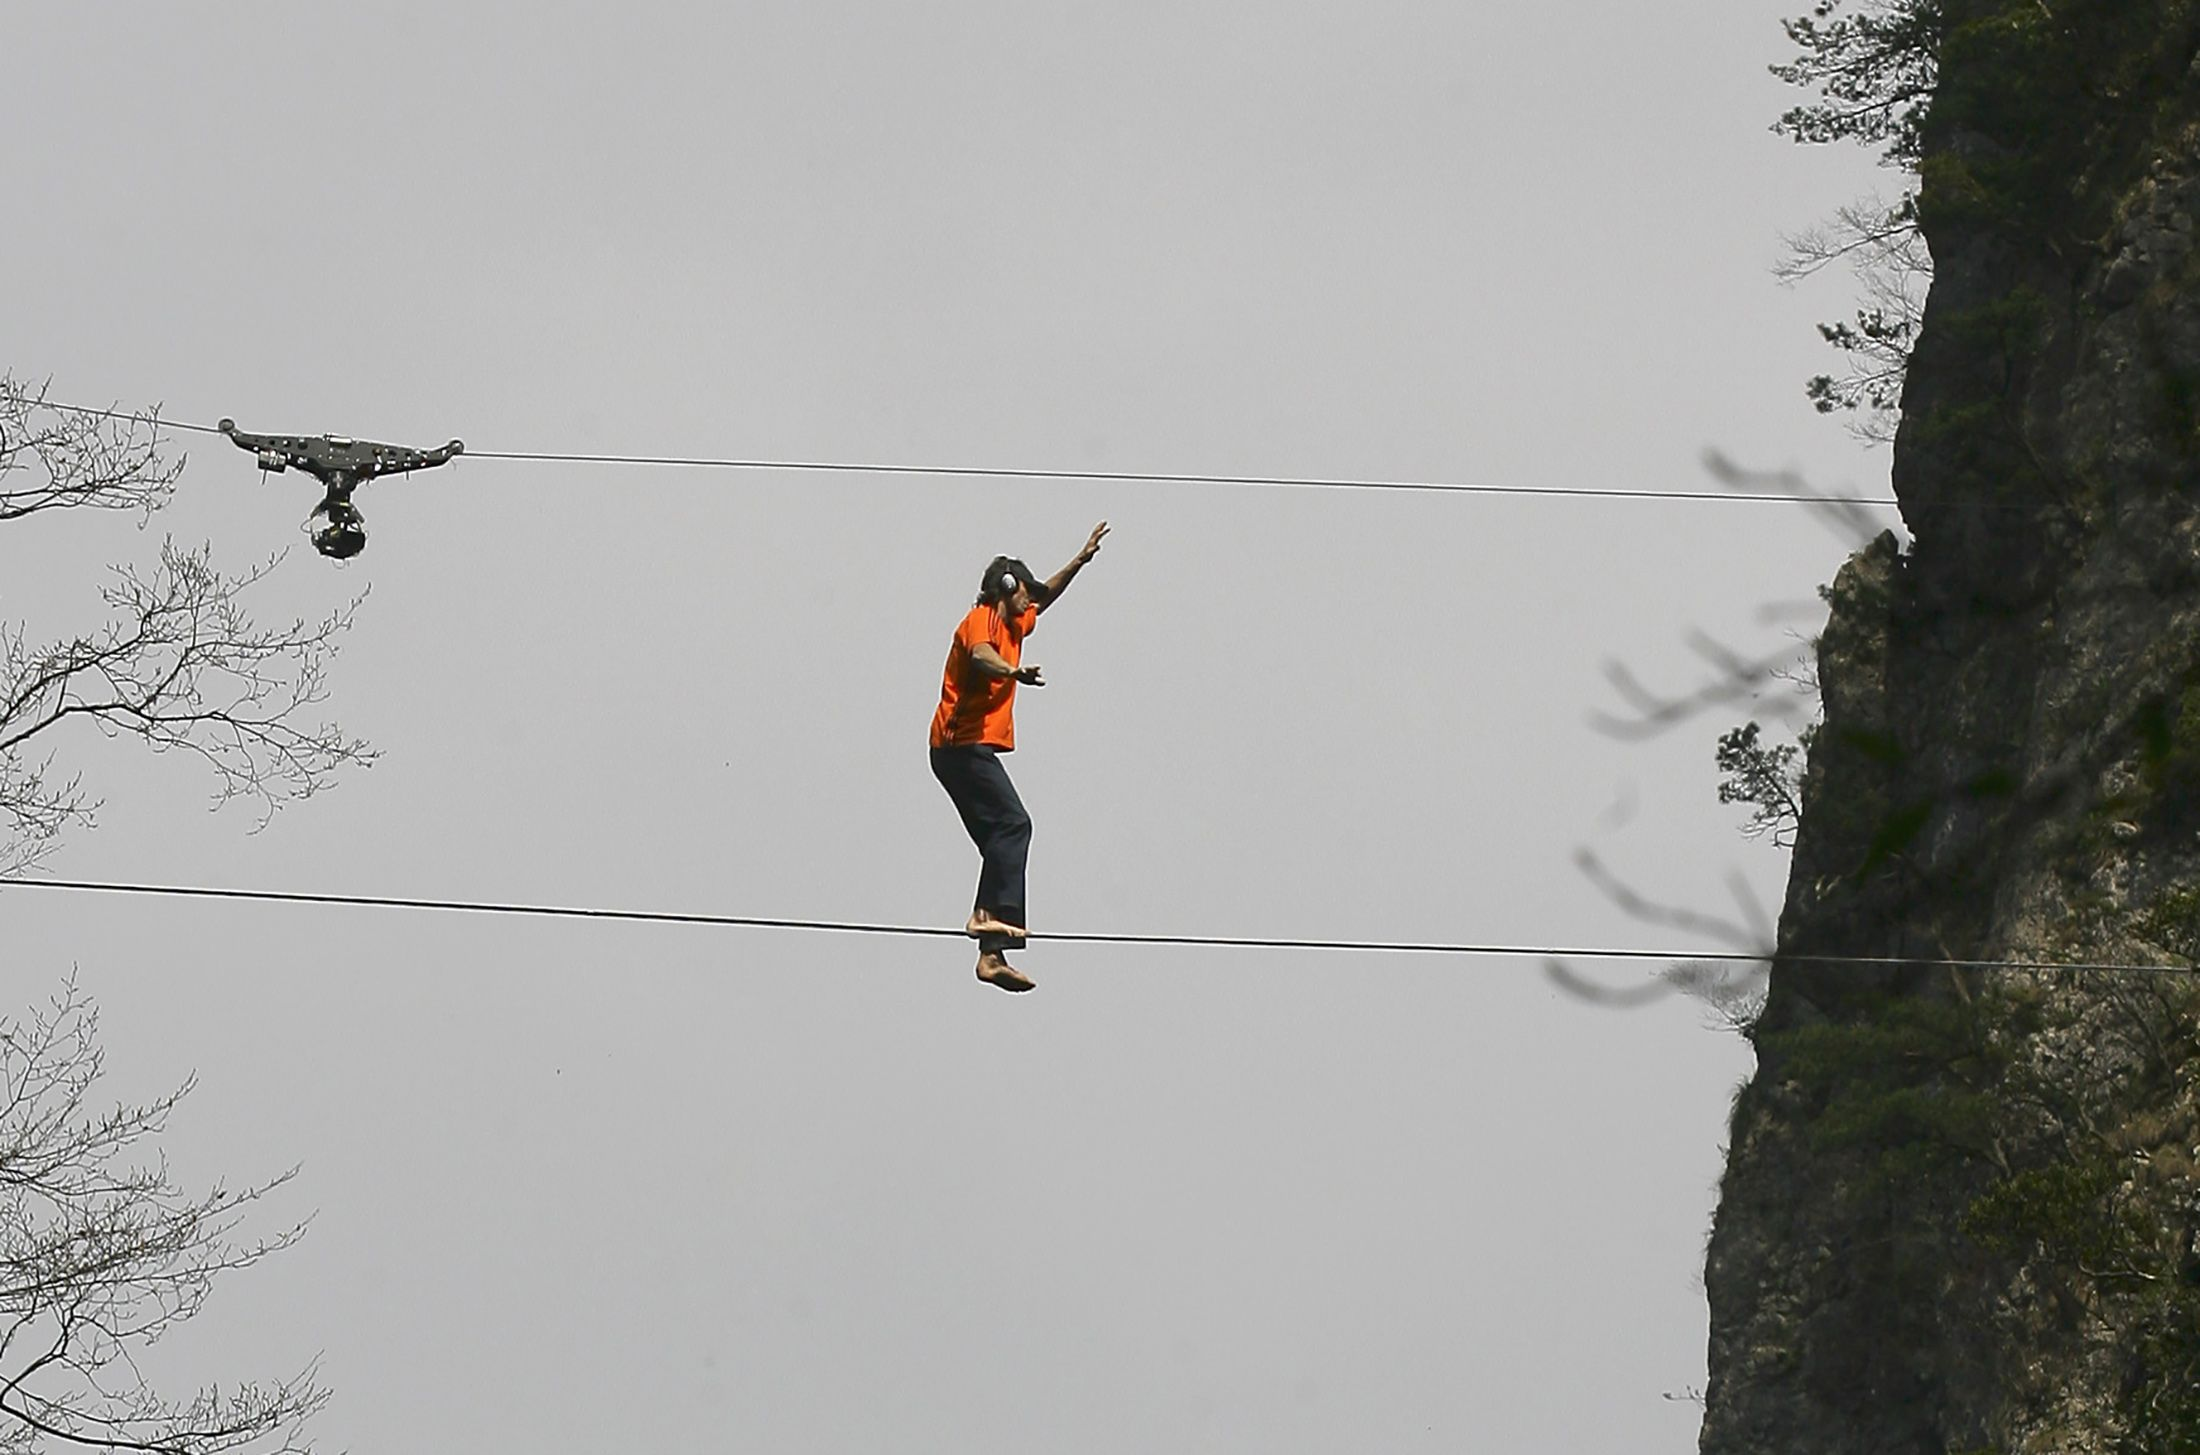 American climber Dean Potter walks barefooted on a rope connected between two mountain peaks in Enshi, Hubei province, China, in this file photo taken April 22, 2012. Potter and another man died while attempting parachute jumps from a 3,000-foot-high cliff in California's Yosemite National Park, officials said on Monday.   REUTERS